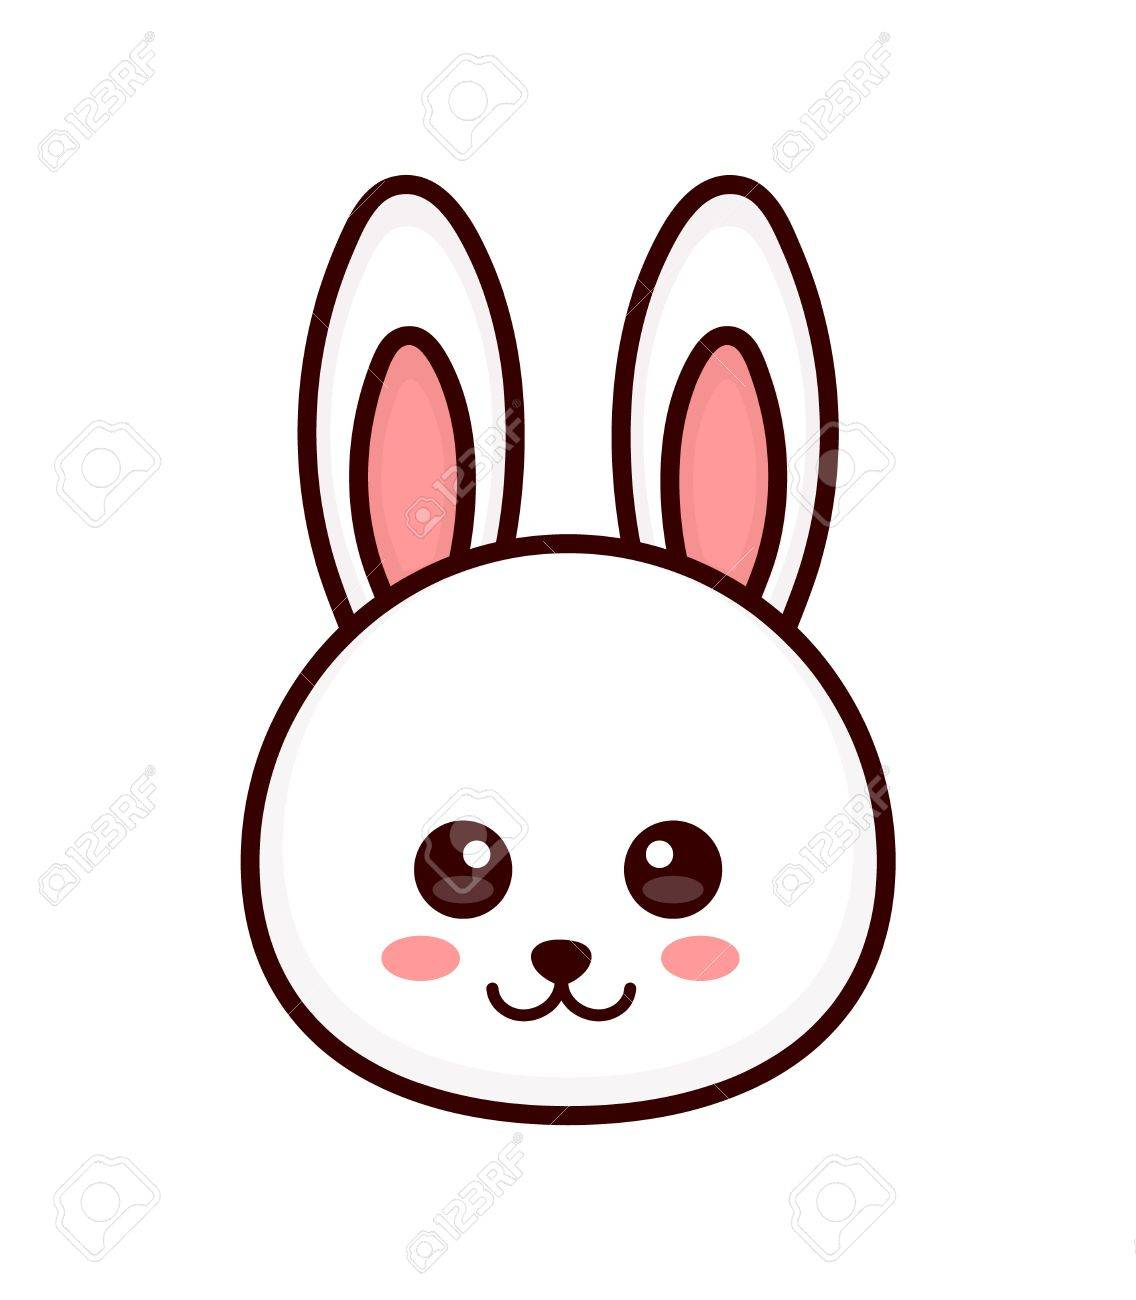 1136x1300 Imagination Bunny Cartoon Pic Free To Use Public Domain Clip Art